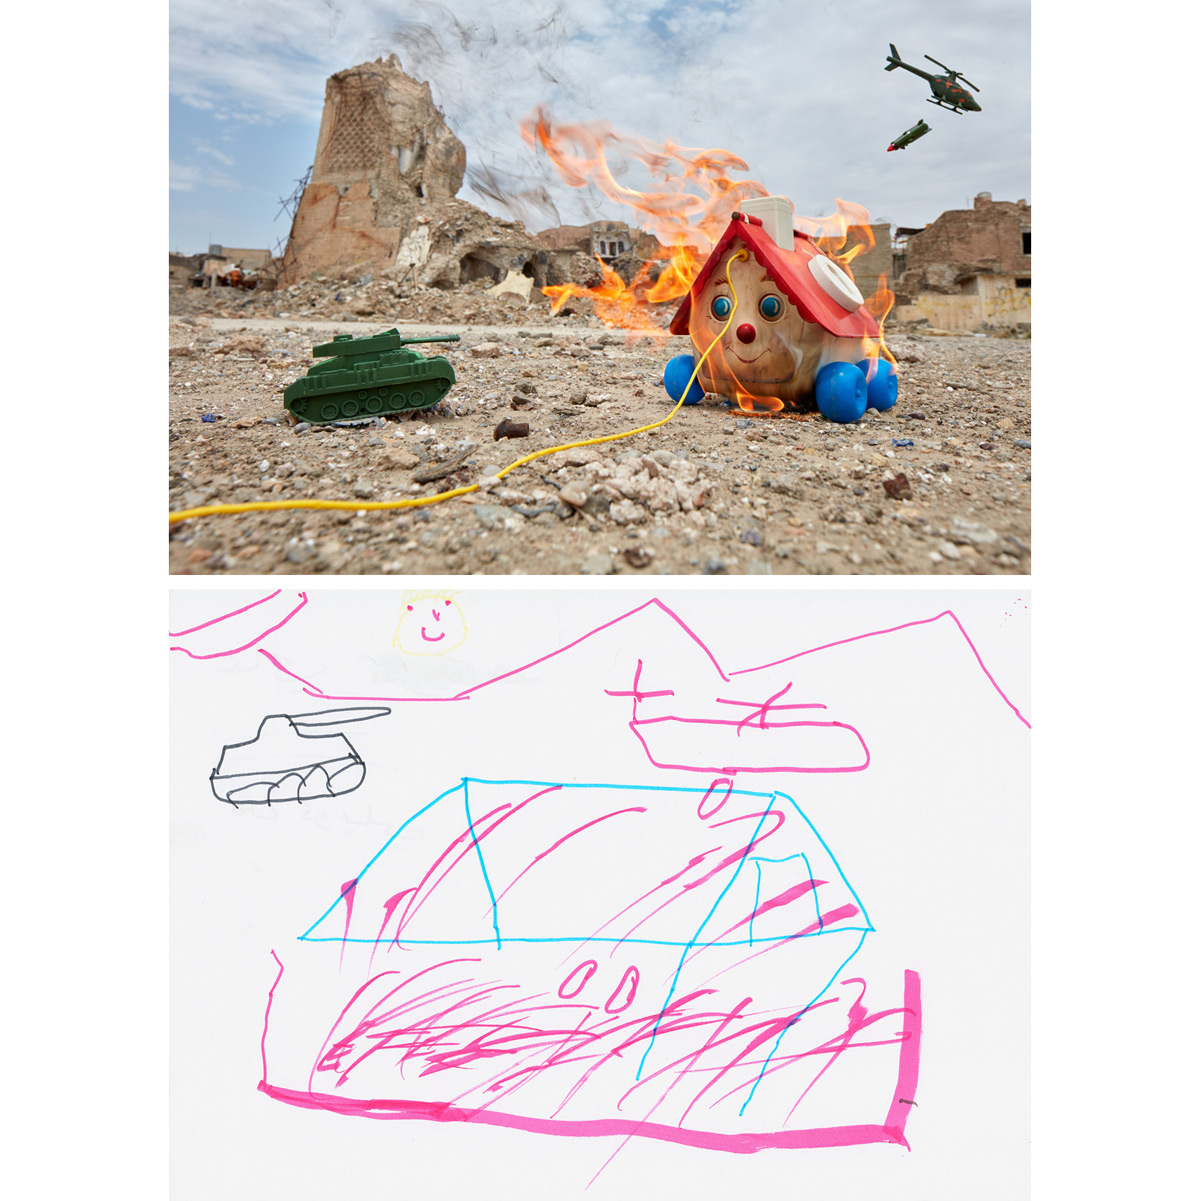 Left Home - West Mosul, Iraq20189-year-old Ali made a drawing of his home. He told the art therapist that the house had saved him and his family, but after it was destroyed in the fighting, they'd had to leave. A well-used Fisher-Price Goldilocks & the Three Bears Playhouse from the late 1960s was found in a toy stall at the Langa Bazaar in Erbil, Iraq. Cleaned out from a U.S. attic and collected by a charity, it had been bundled with other used toys and sold by the container-full to secondhand vendors in Iraq. The pull-toy house, threatened by a plastic tank and helicopter, was photographed at the remains of the Great Mosque of al-Nuri in West Mosul, where the Islamic State had declared their caliphate a few years before—close to where Ali's own home had once stood.